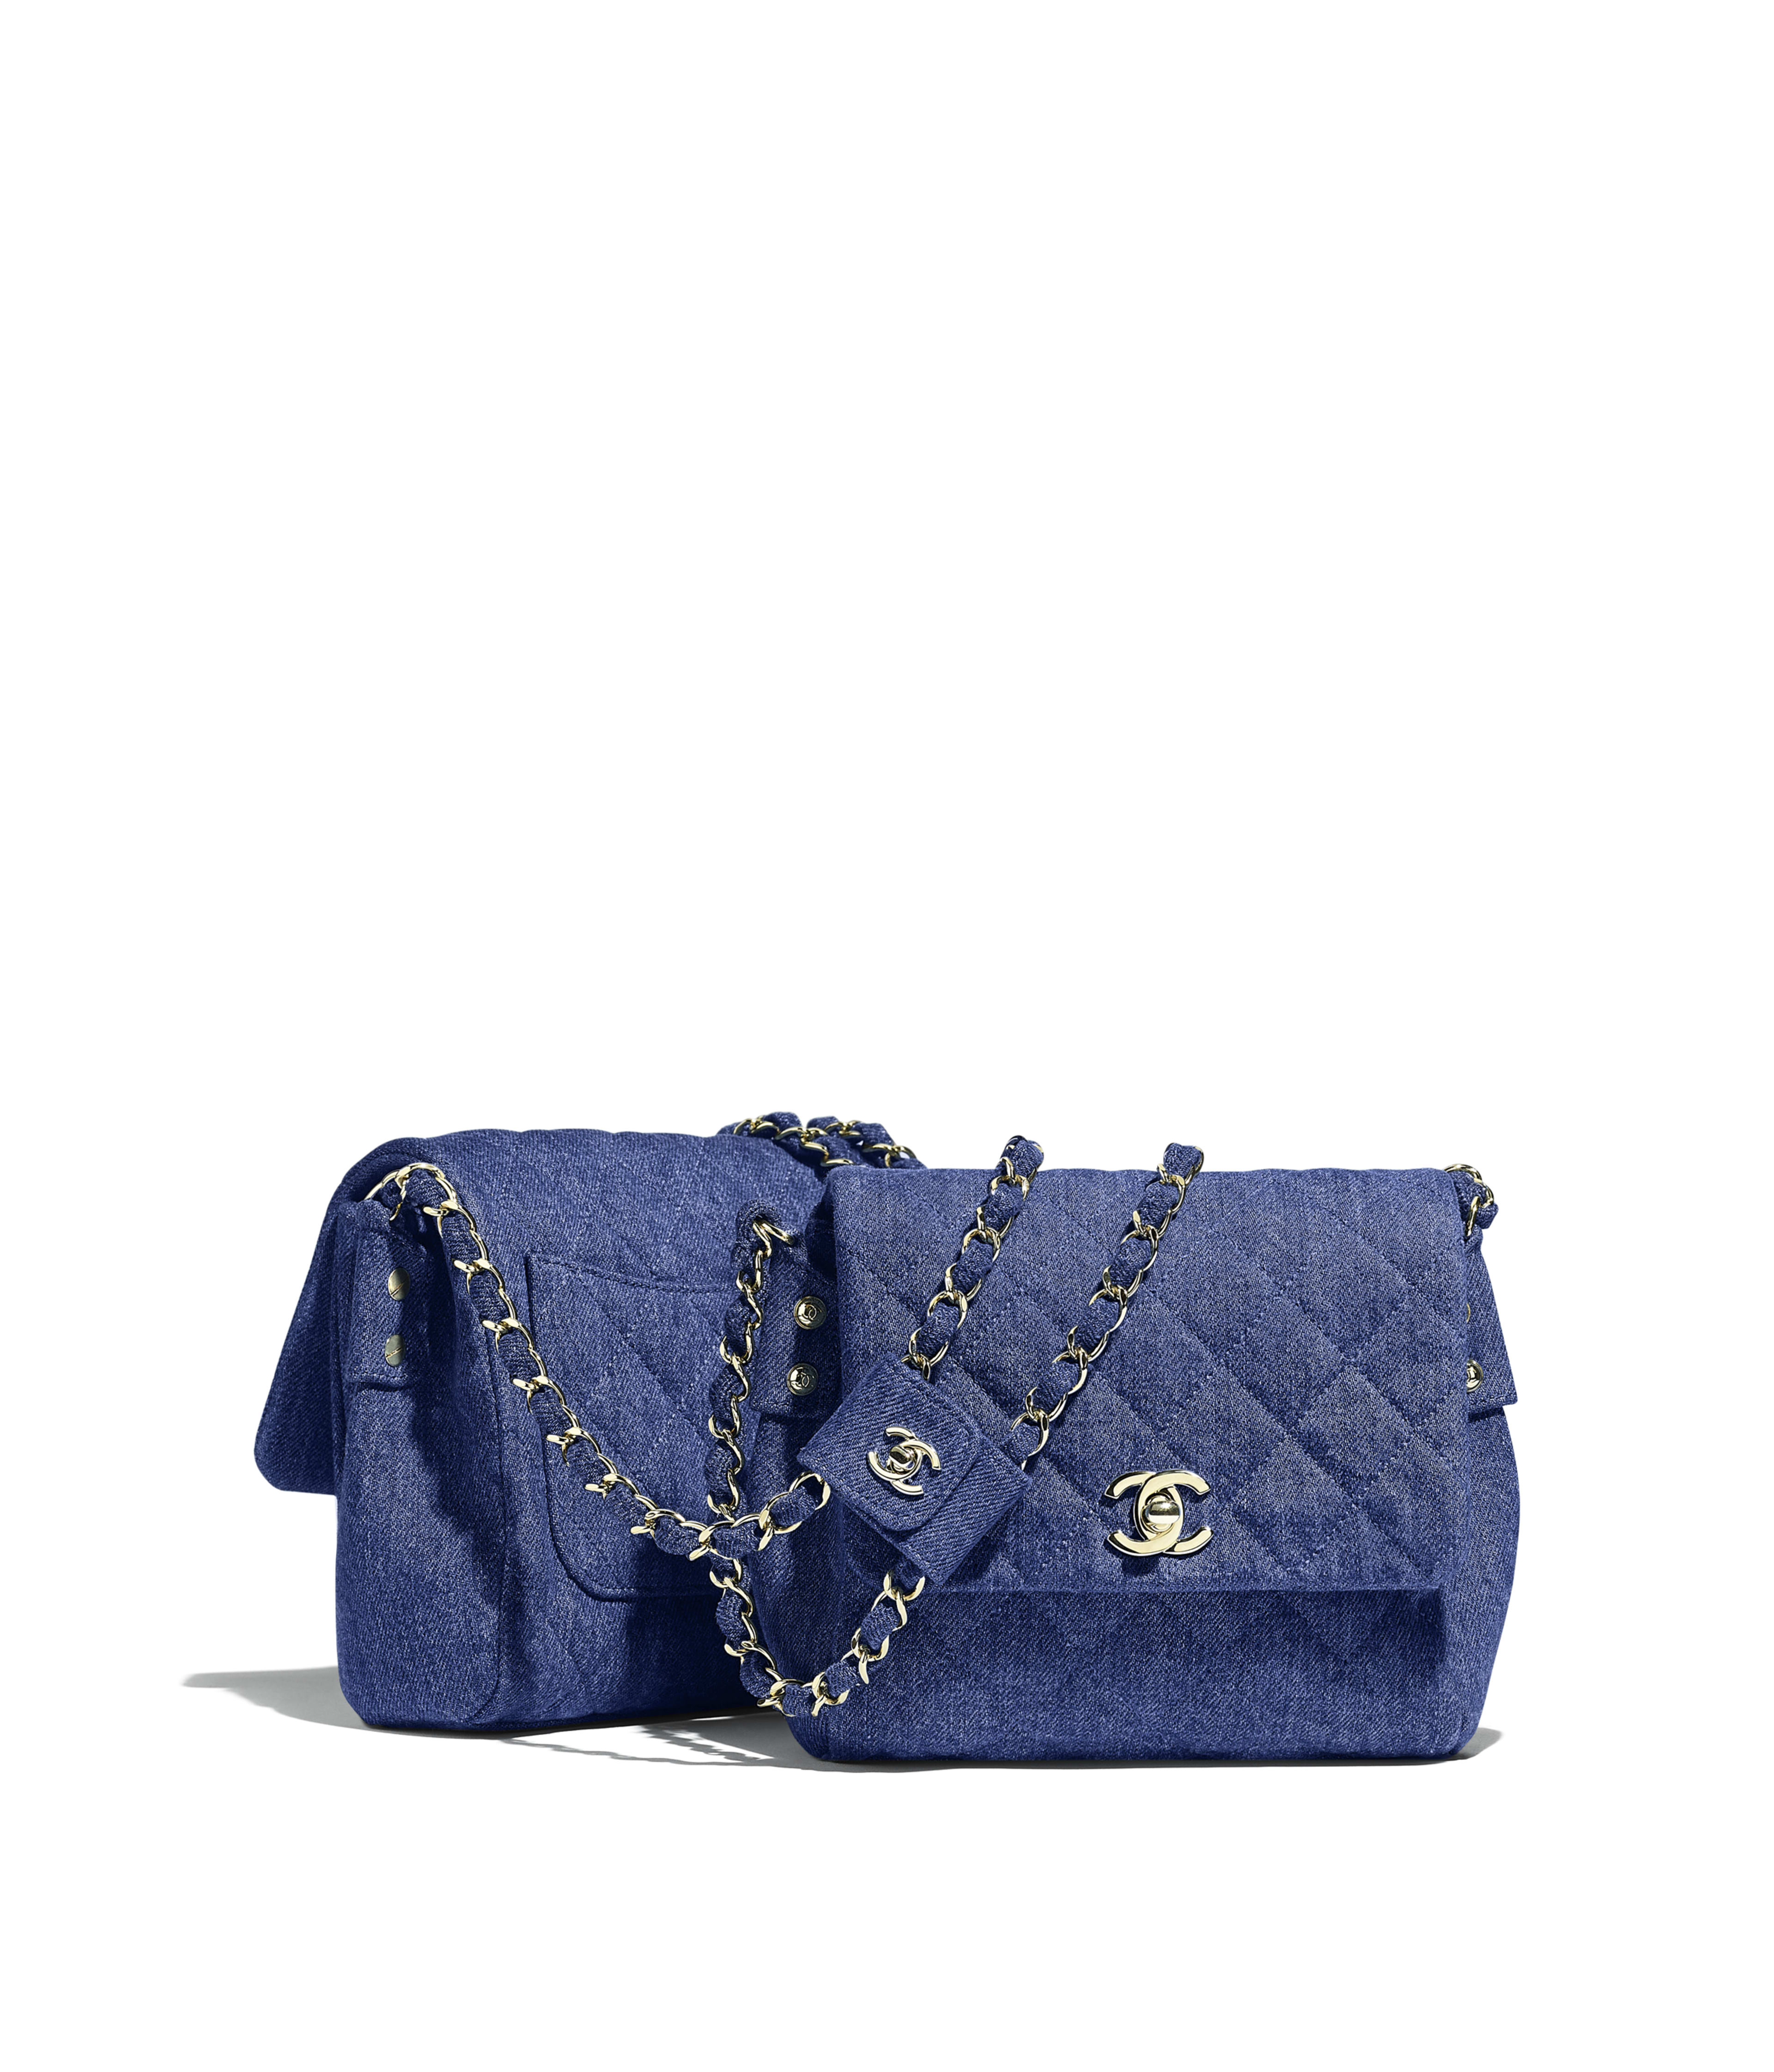 2d77841658ad33 Side-Packs Denim & Gold-Tone Metal, Dark Blue Ref. AS0658B00549N4616